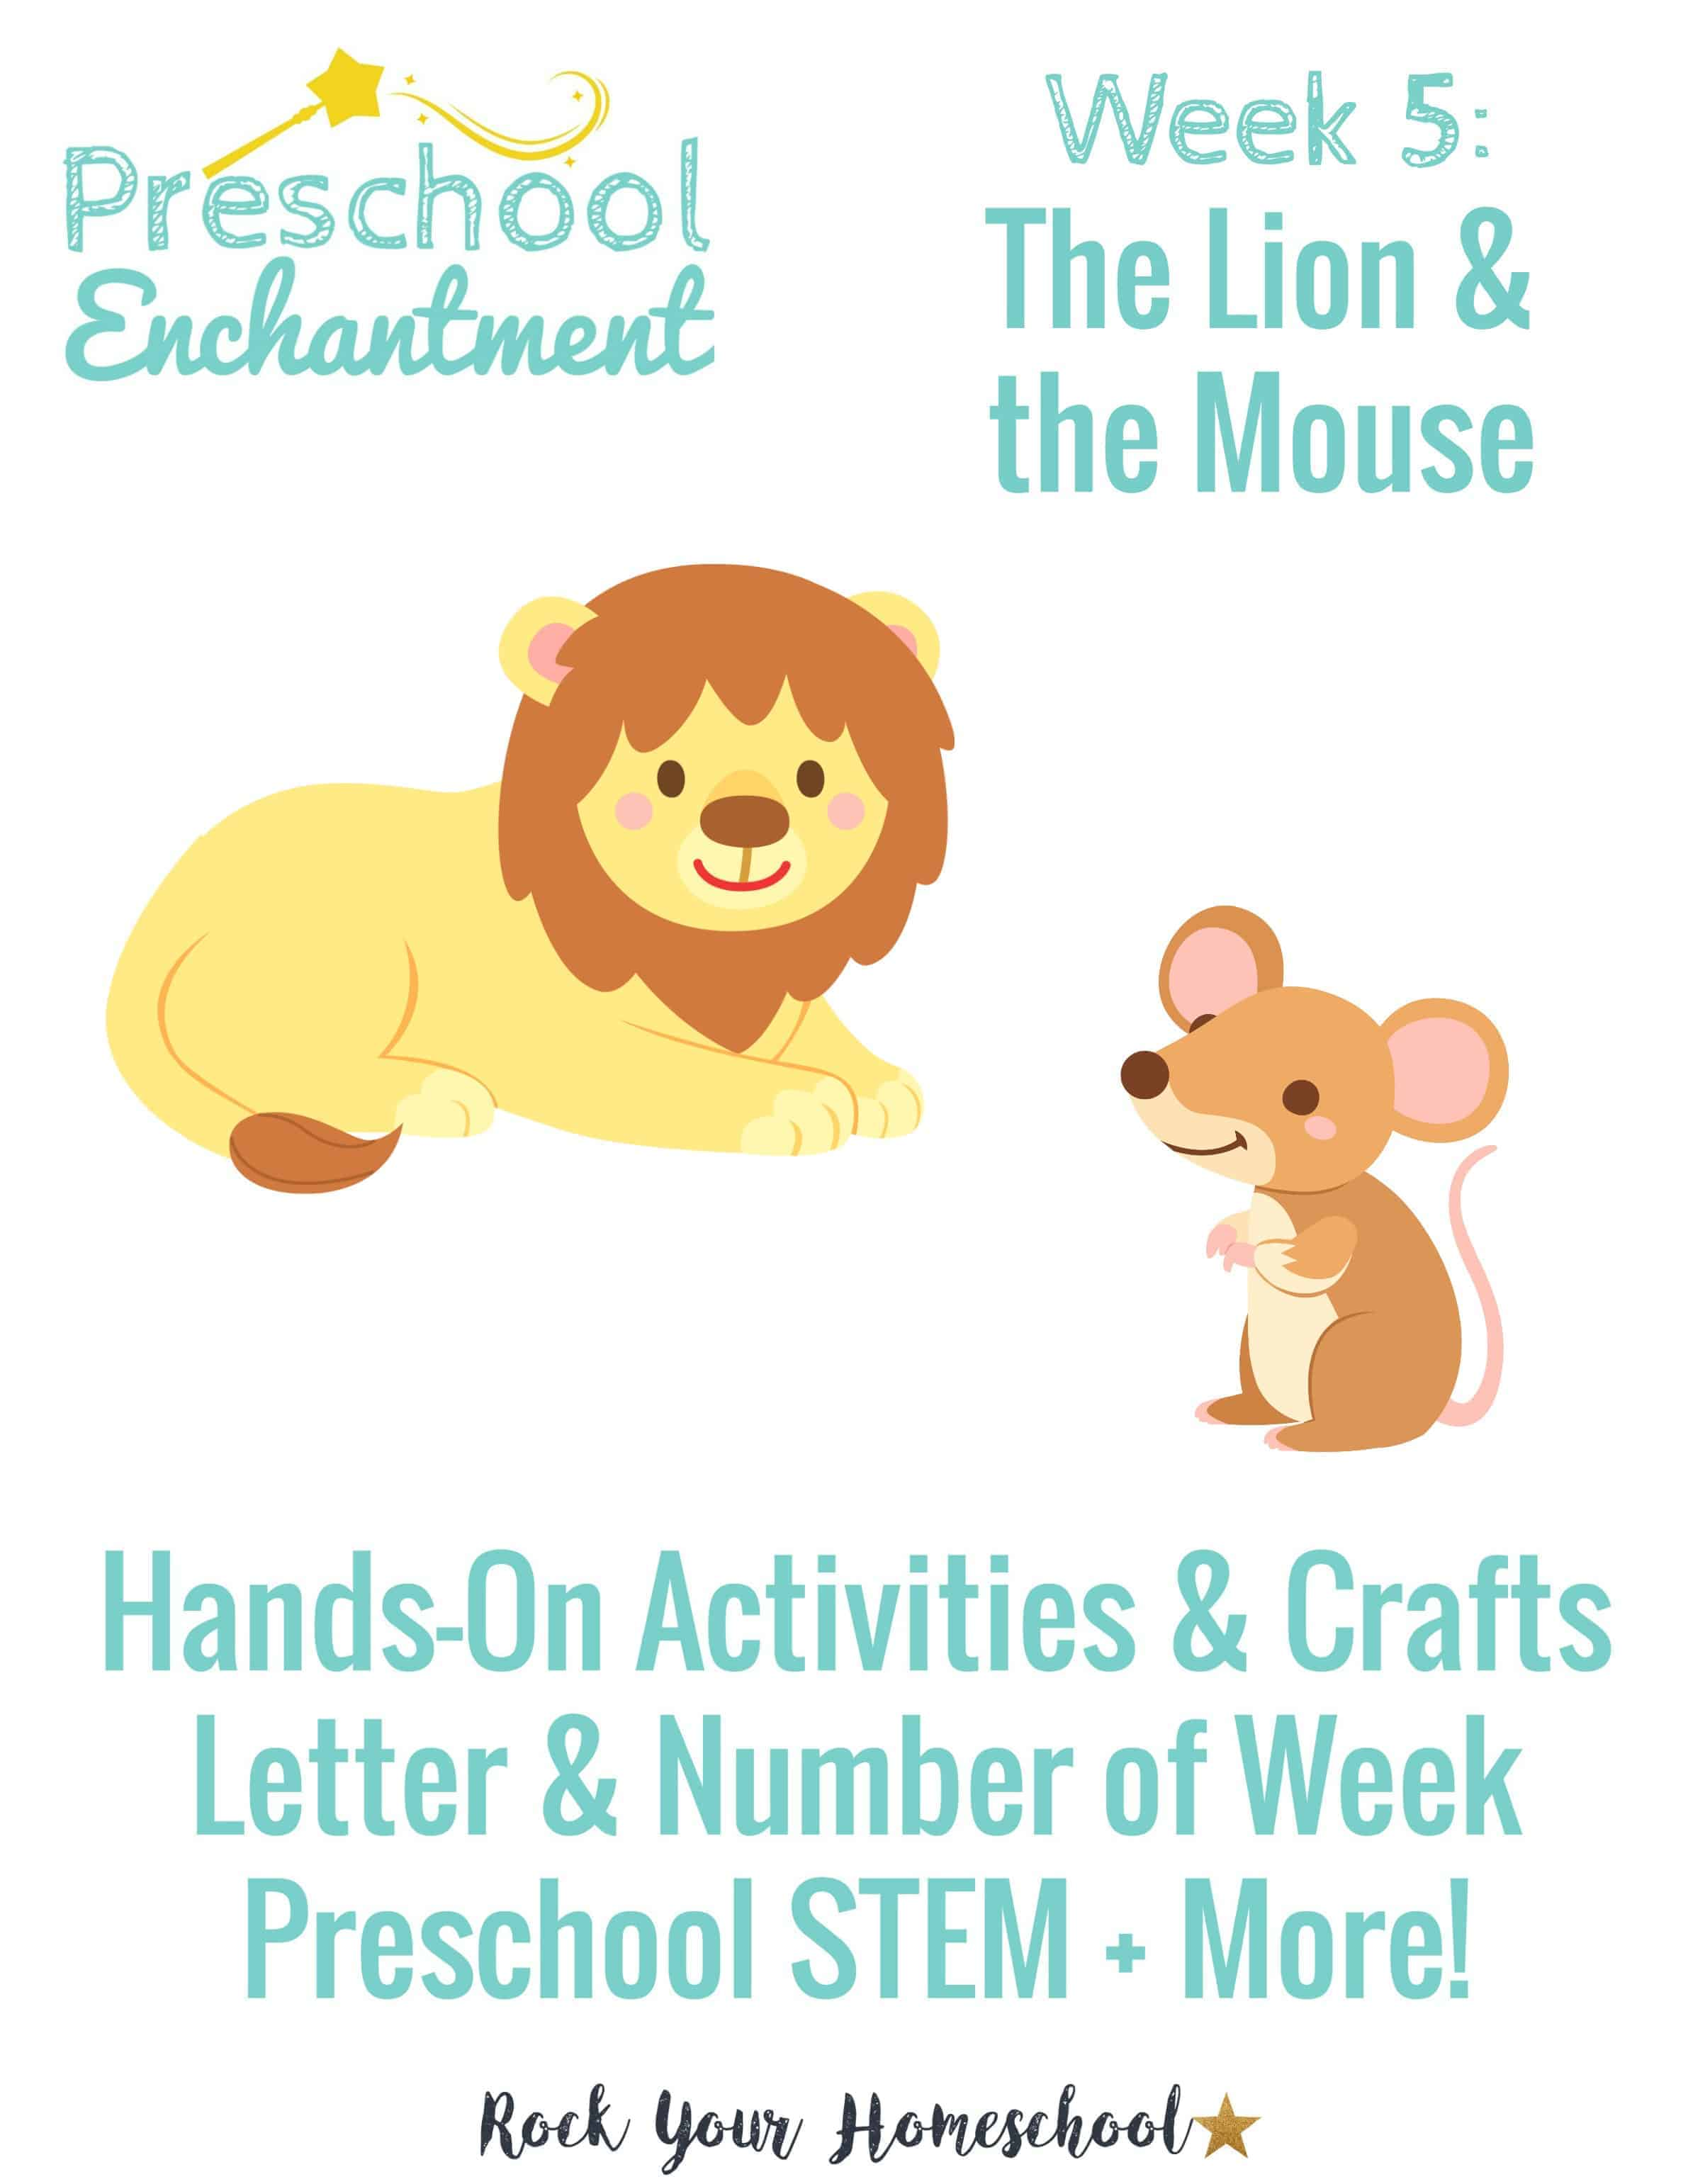 Preschool Enchantment Week 5 The Lion Amp The Mouse